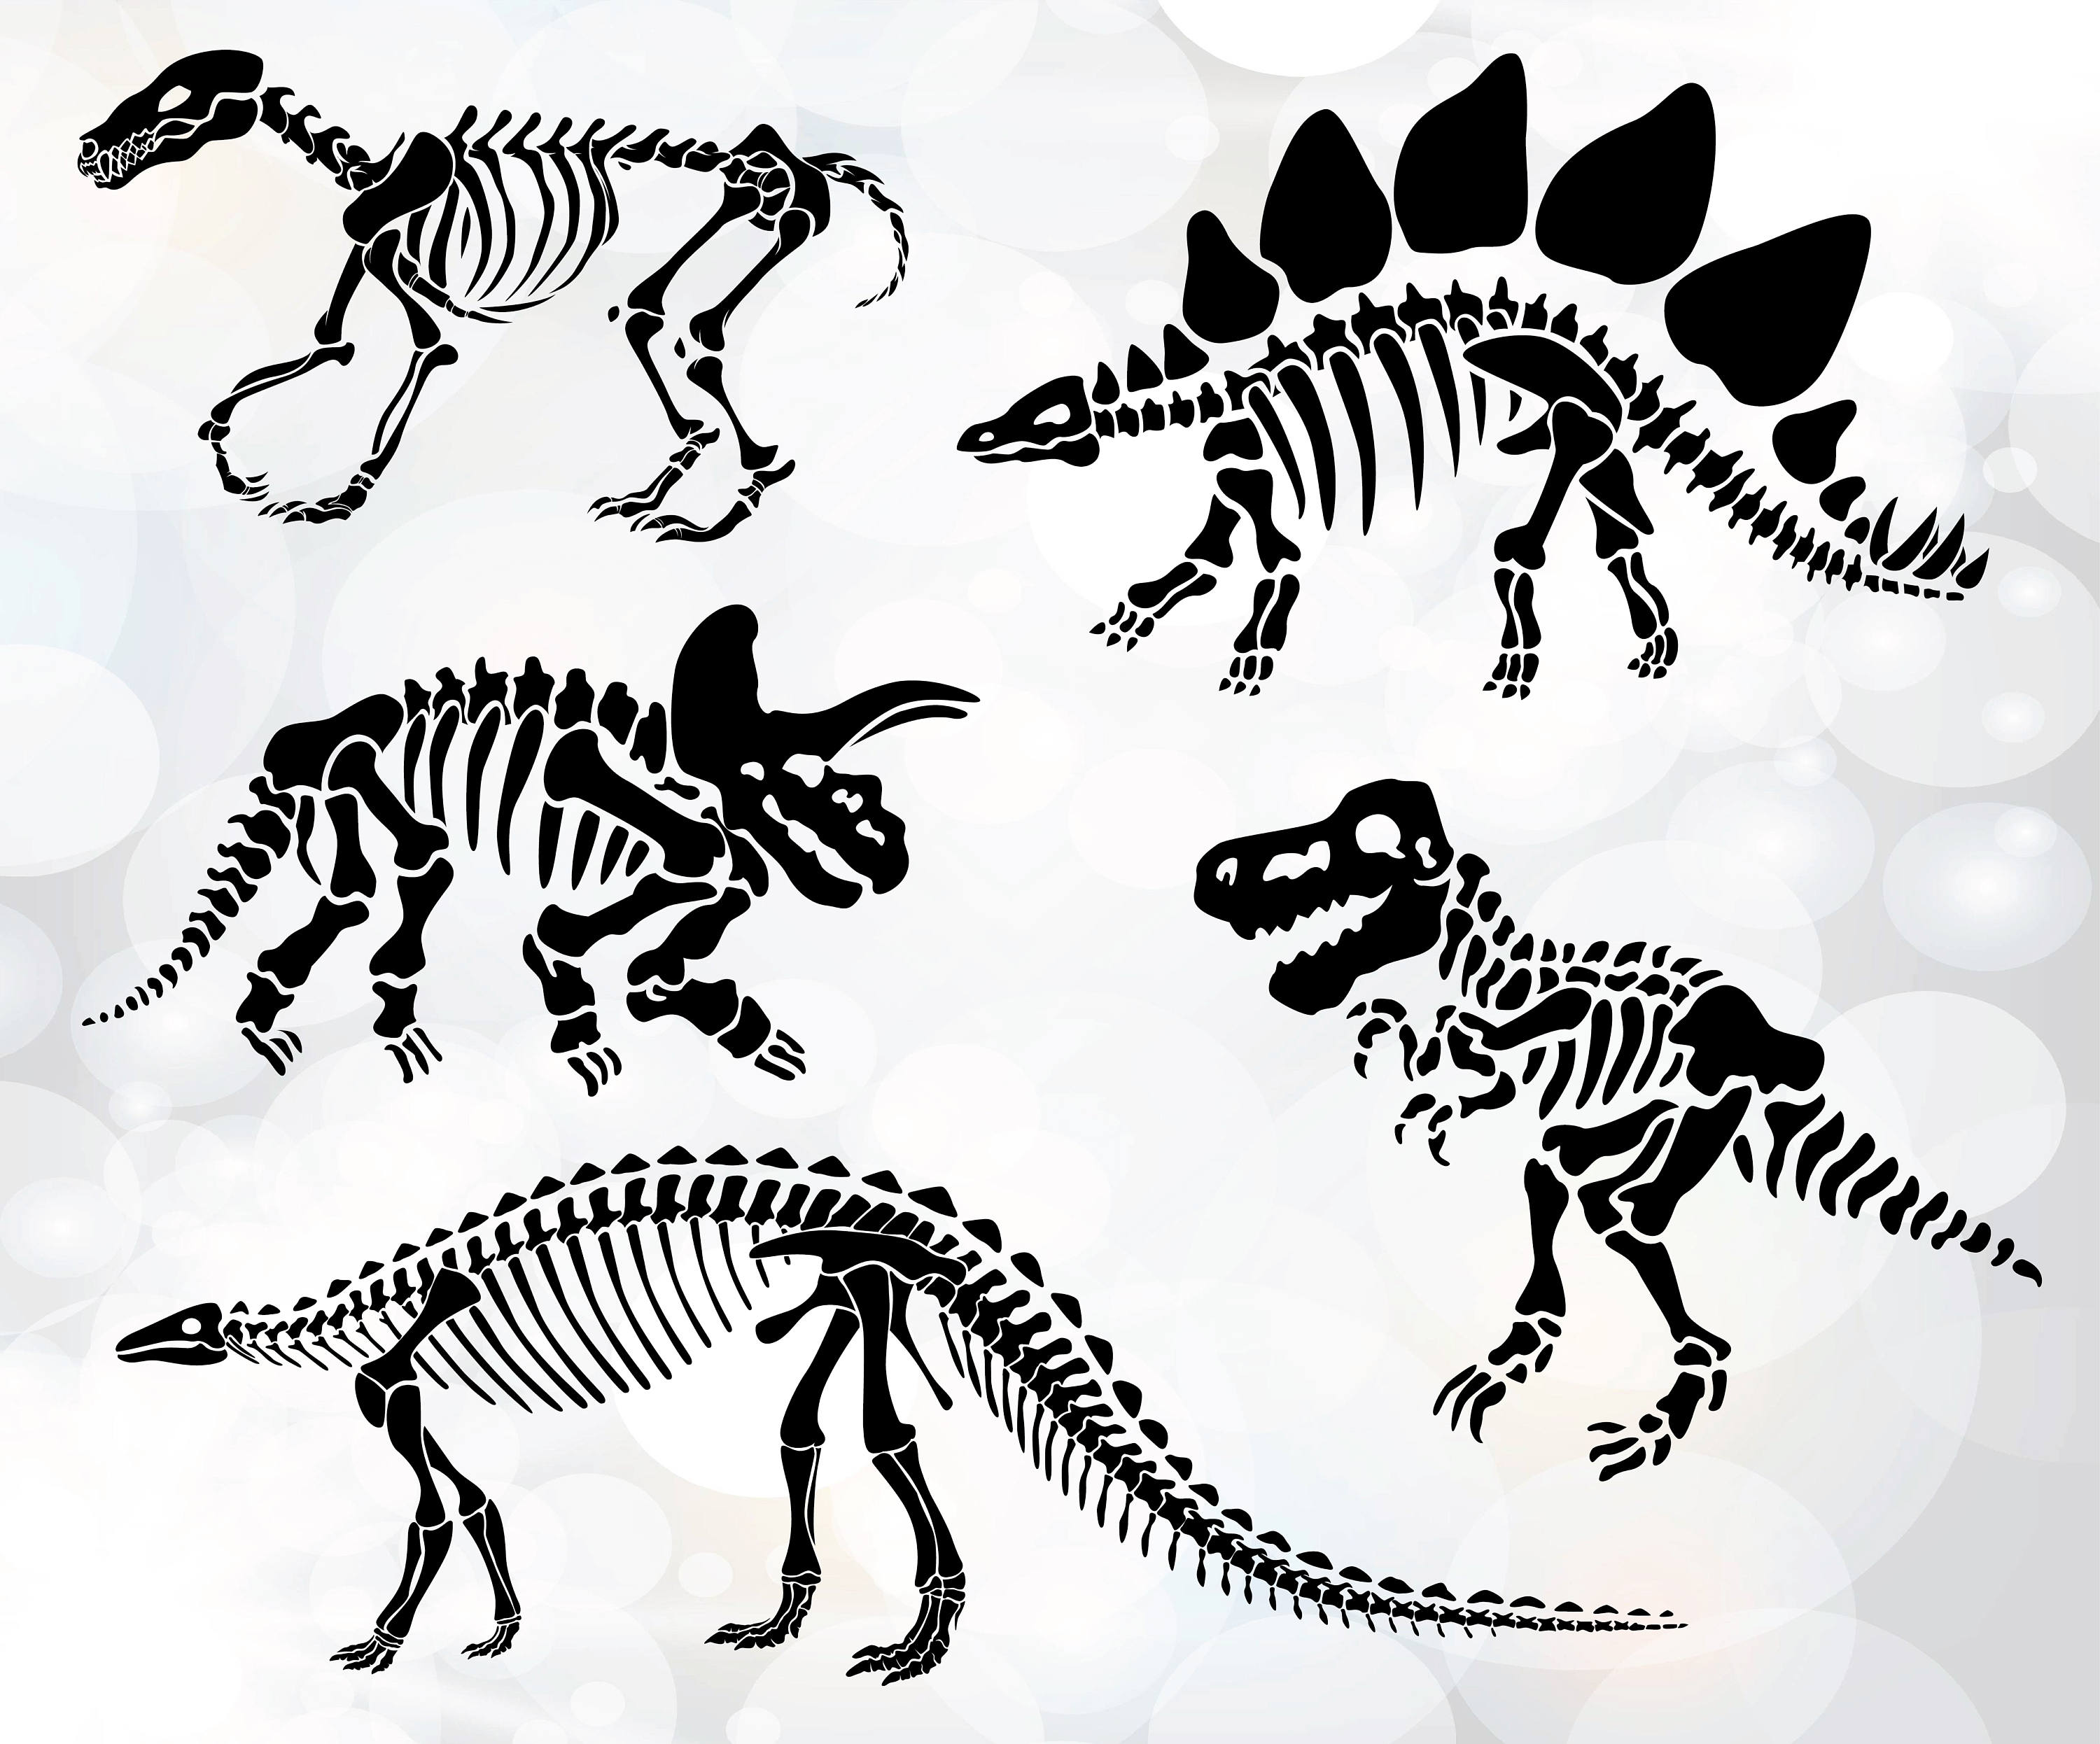 Dinosaur bone drawing at free for for Printable dinosaur skeleton template